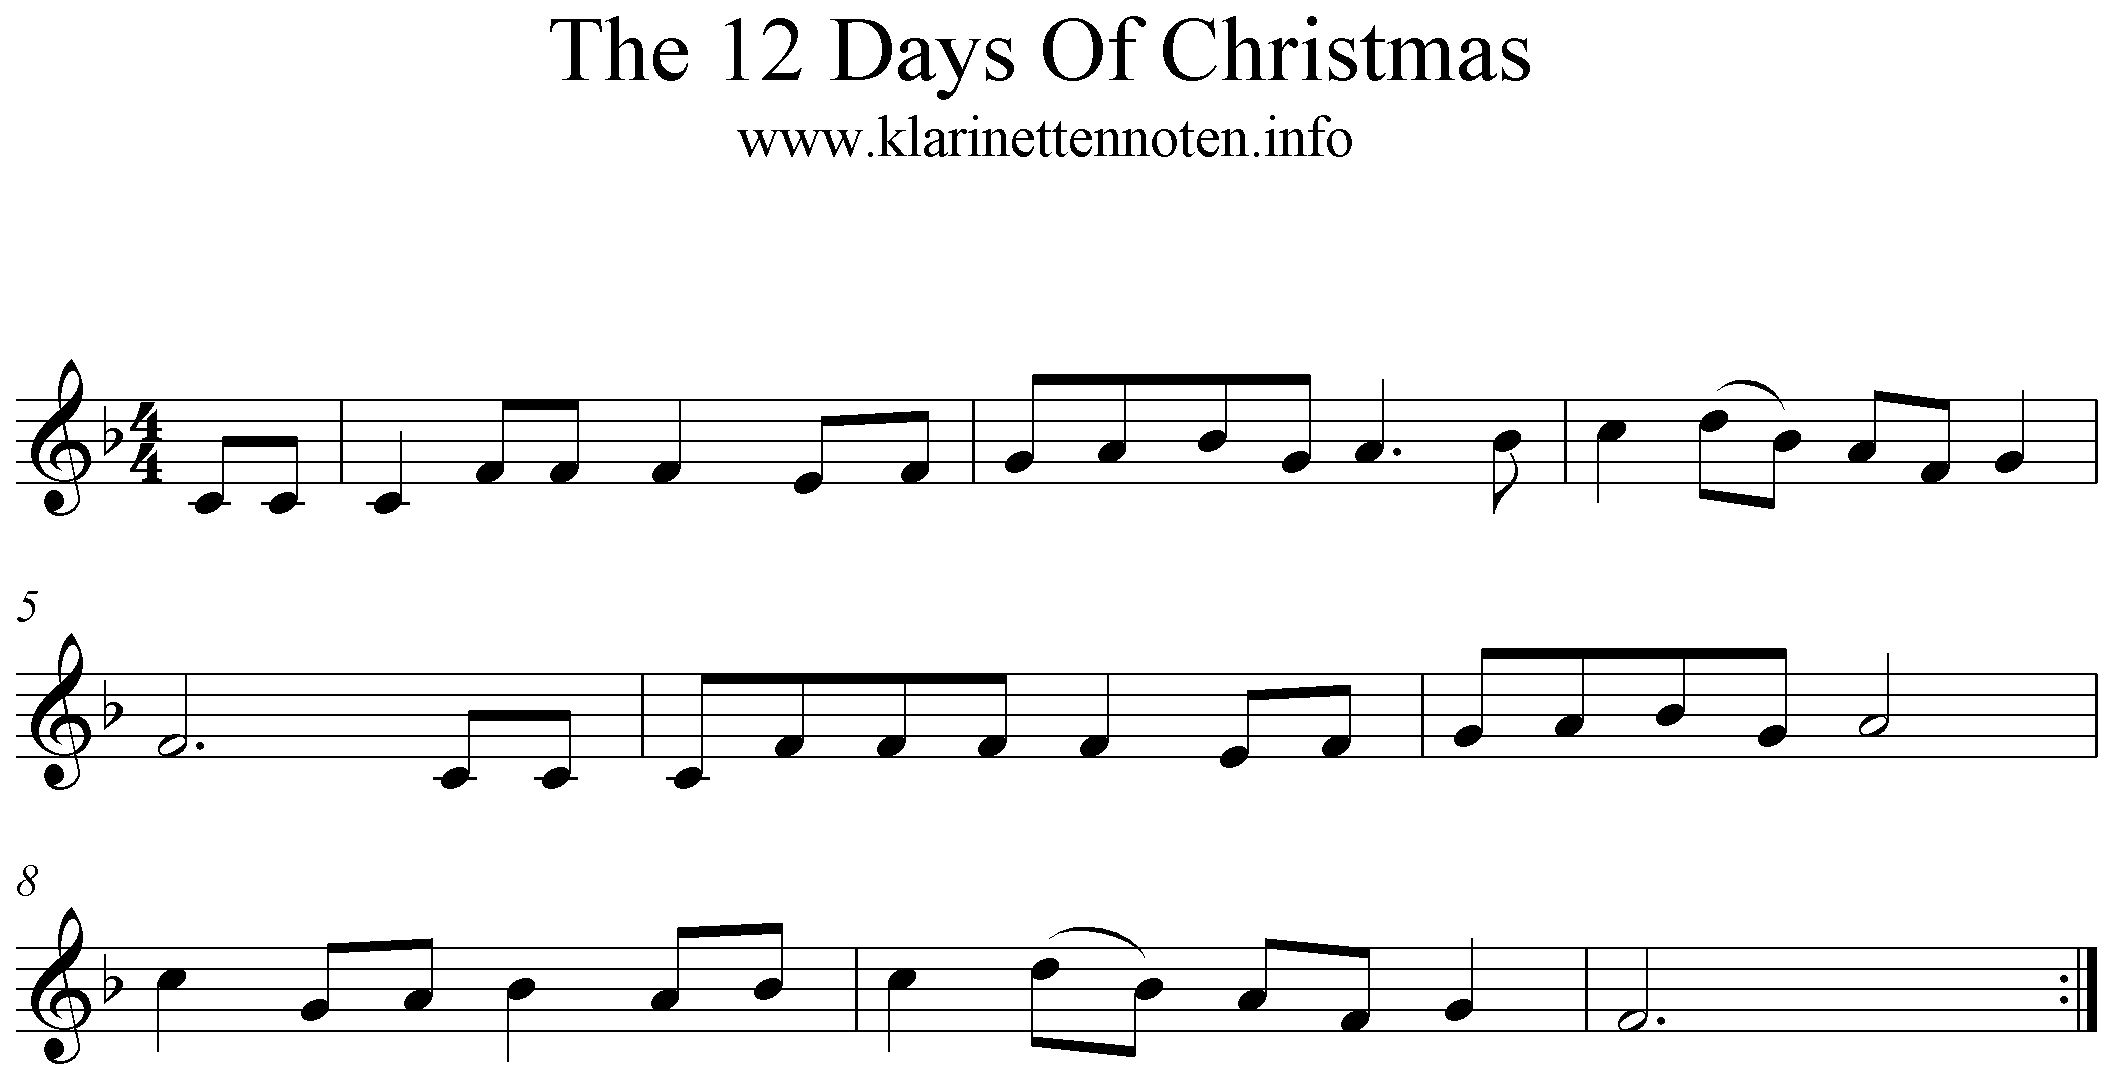 Noten für Trompete The 12 Days of Christmas